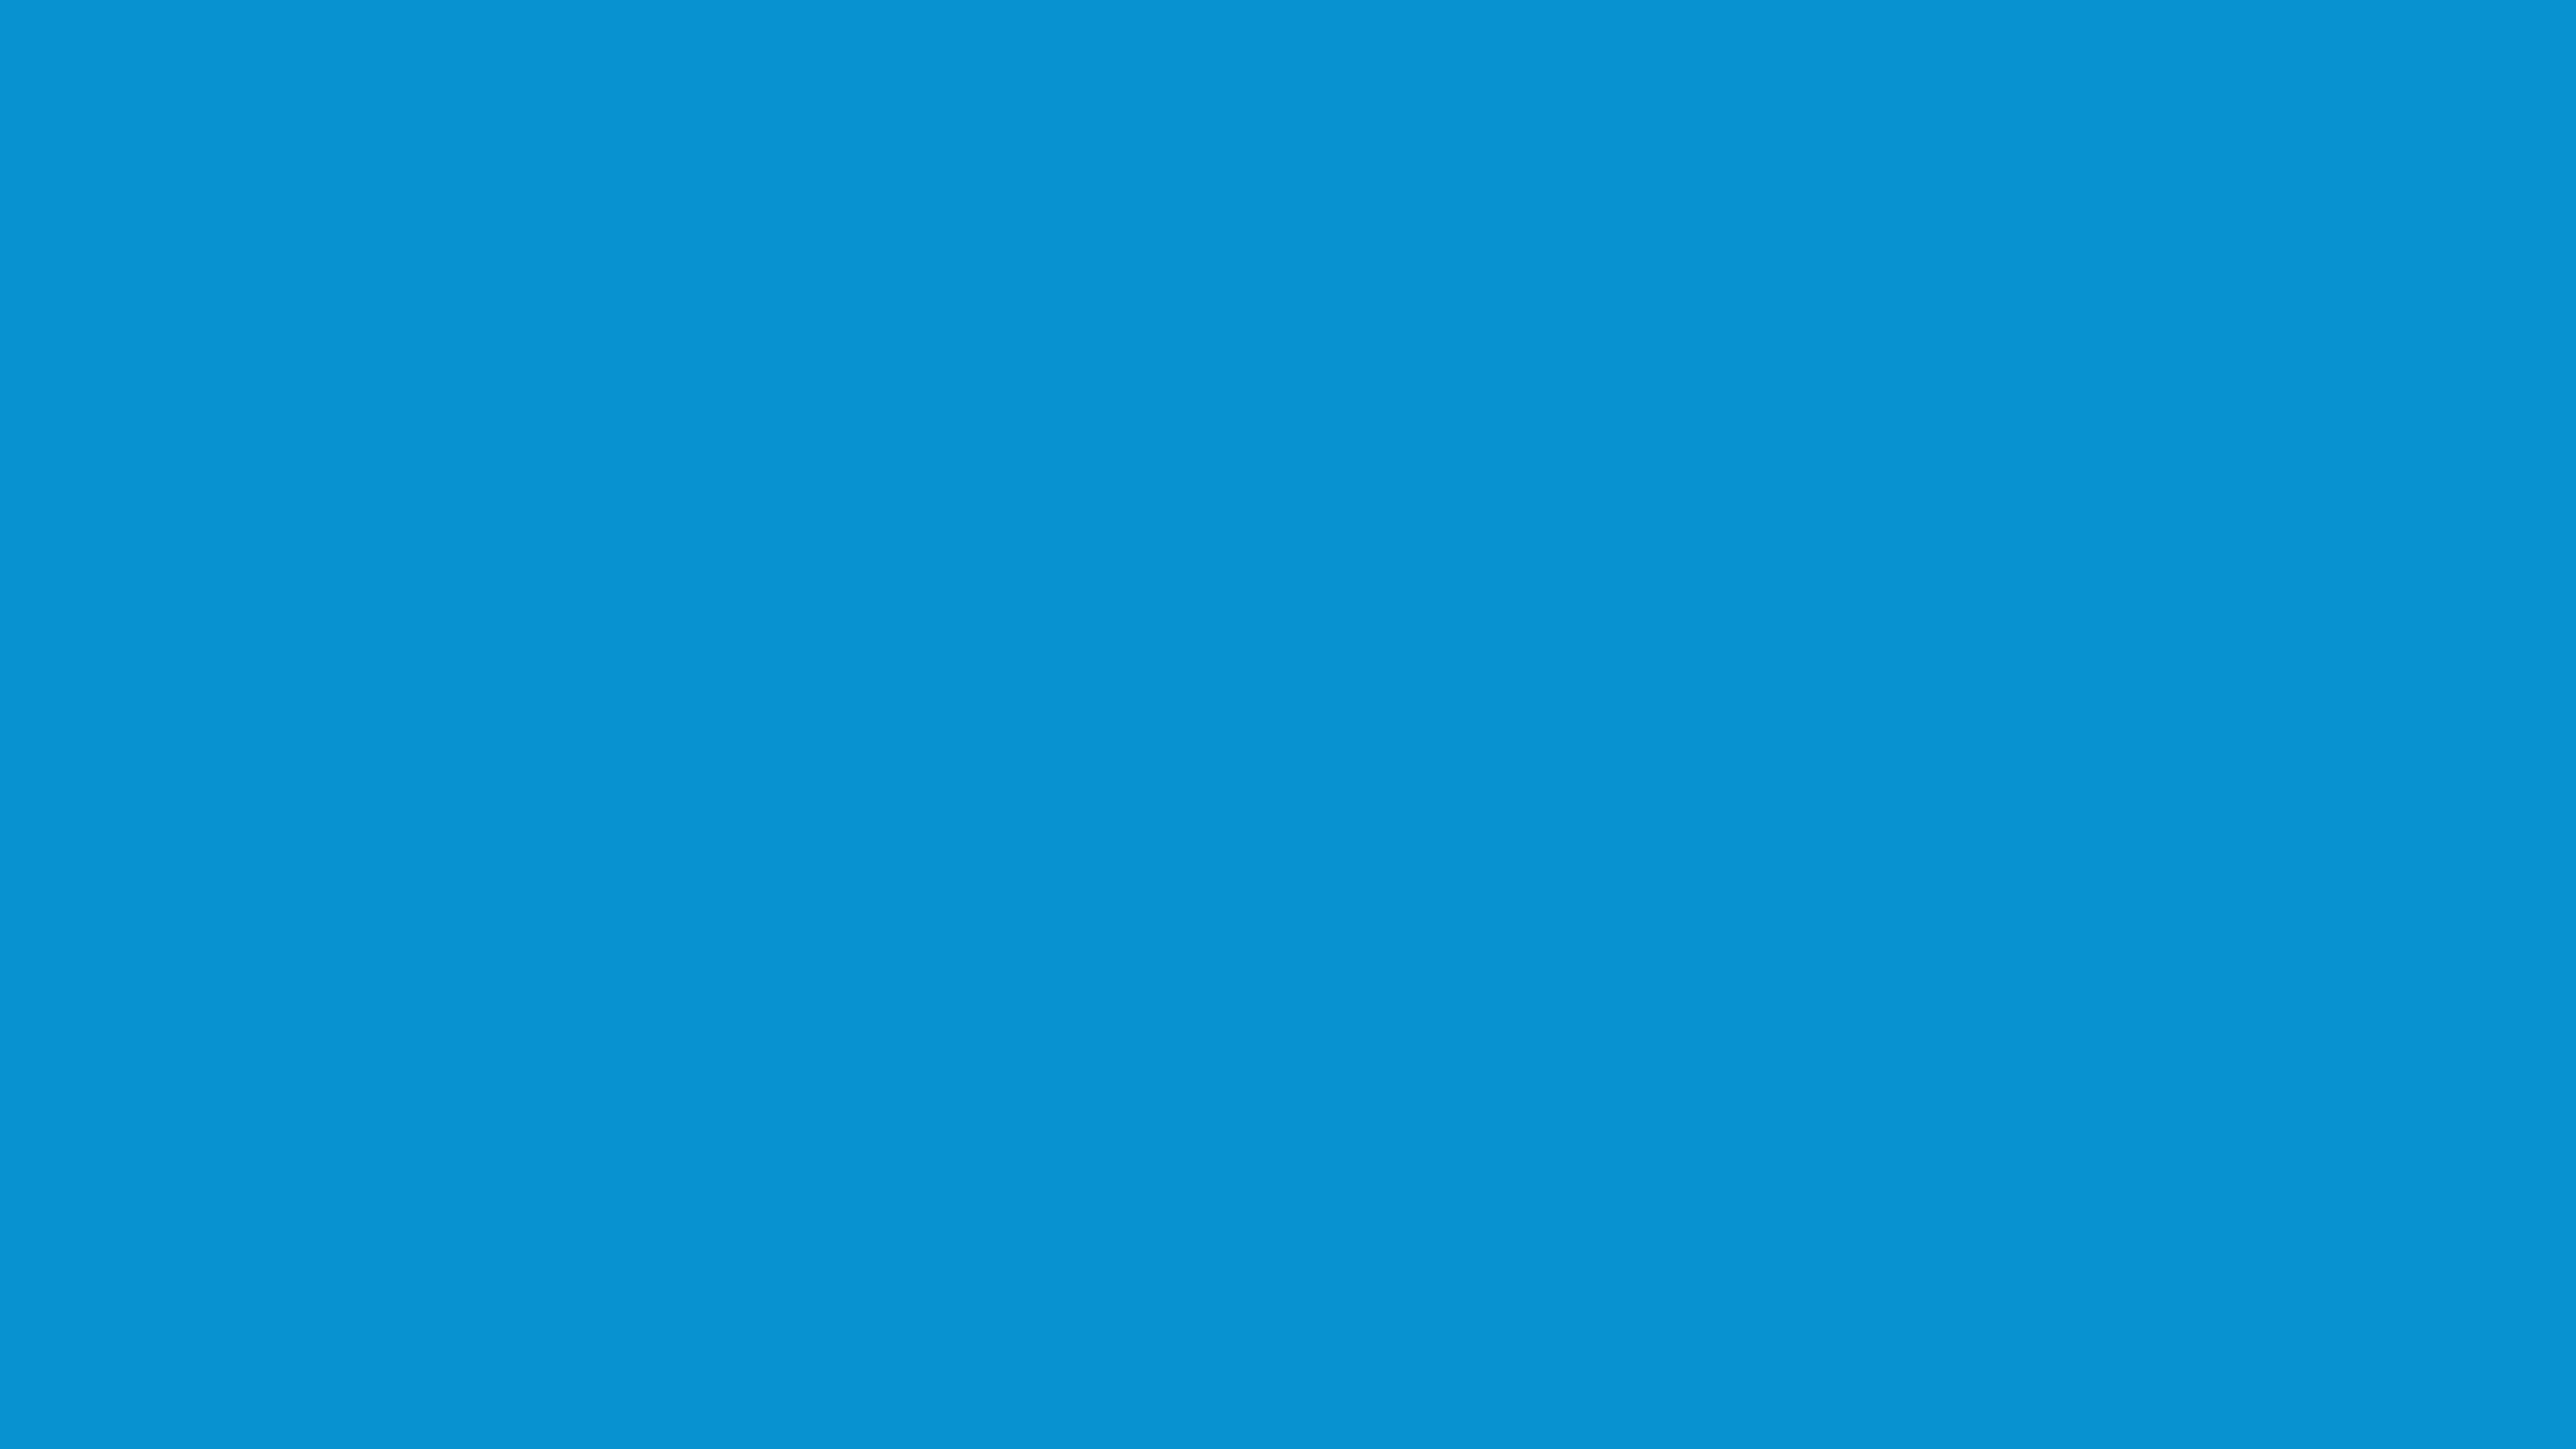 3840x2160 Rich Electric Blue Solid Color Background